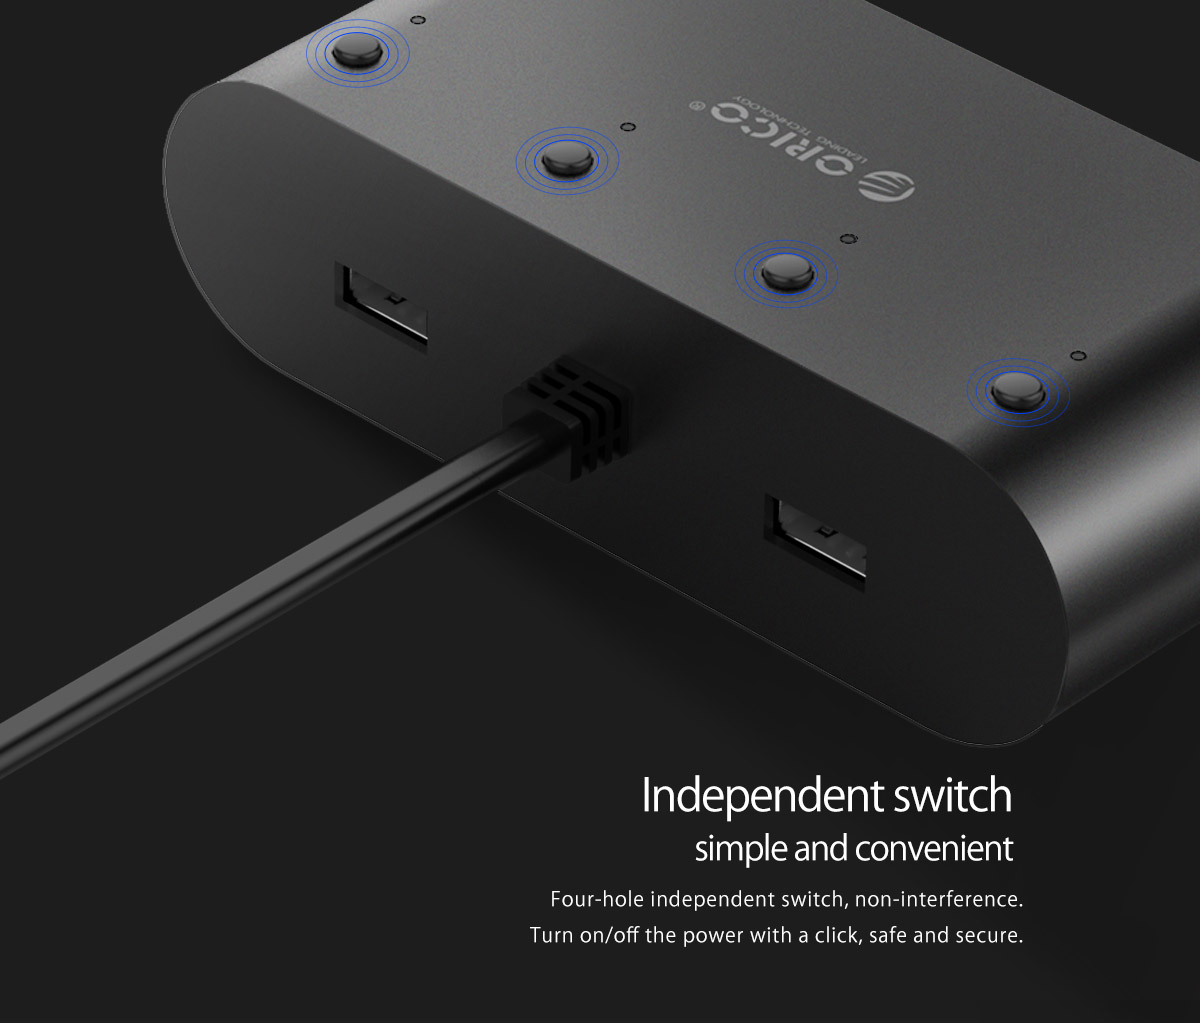 four-hole independent switch